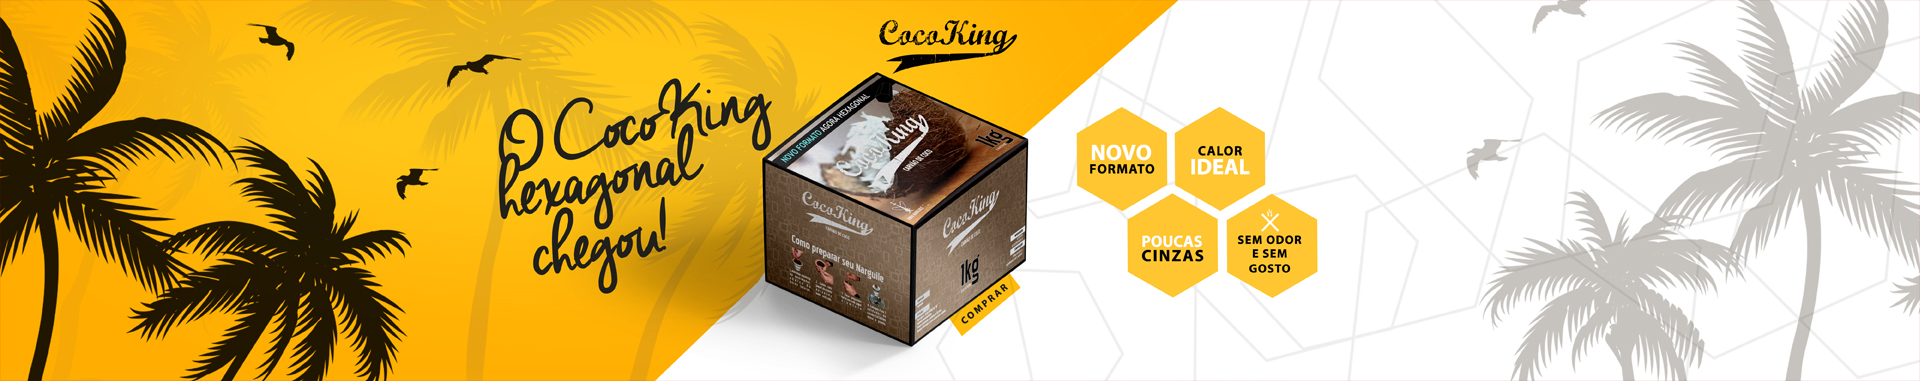 Cocoking